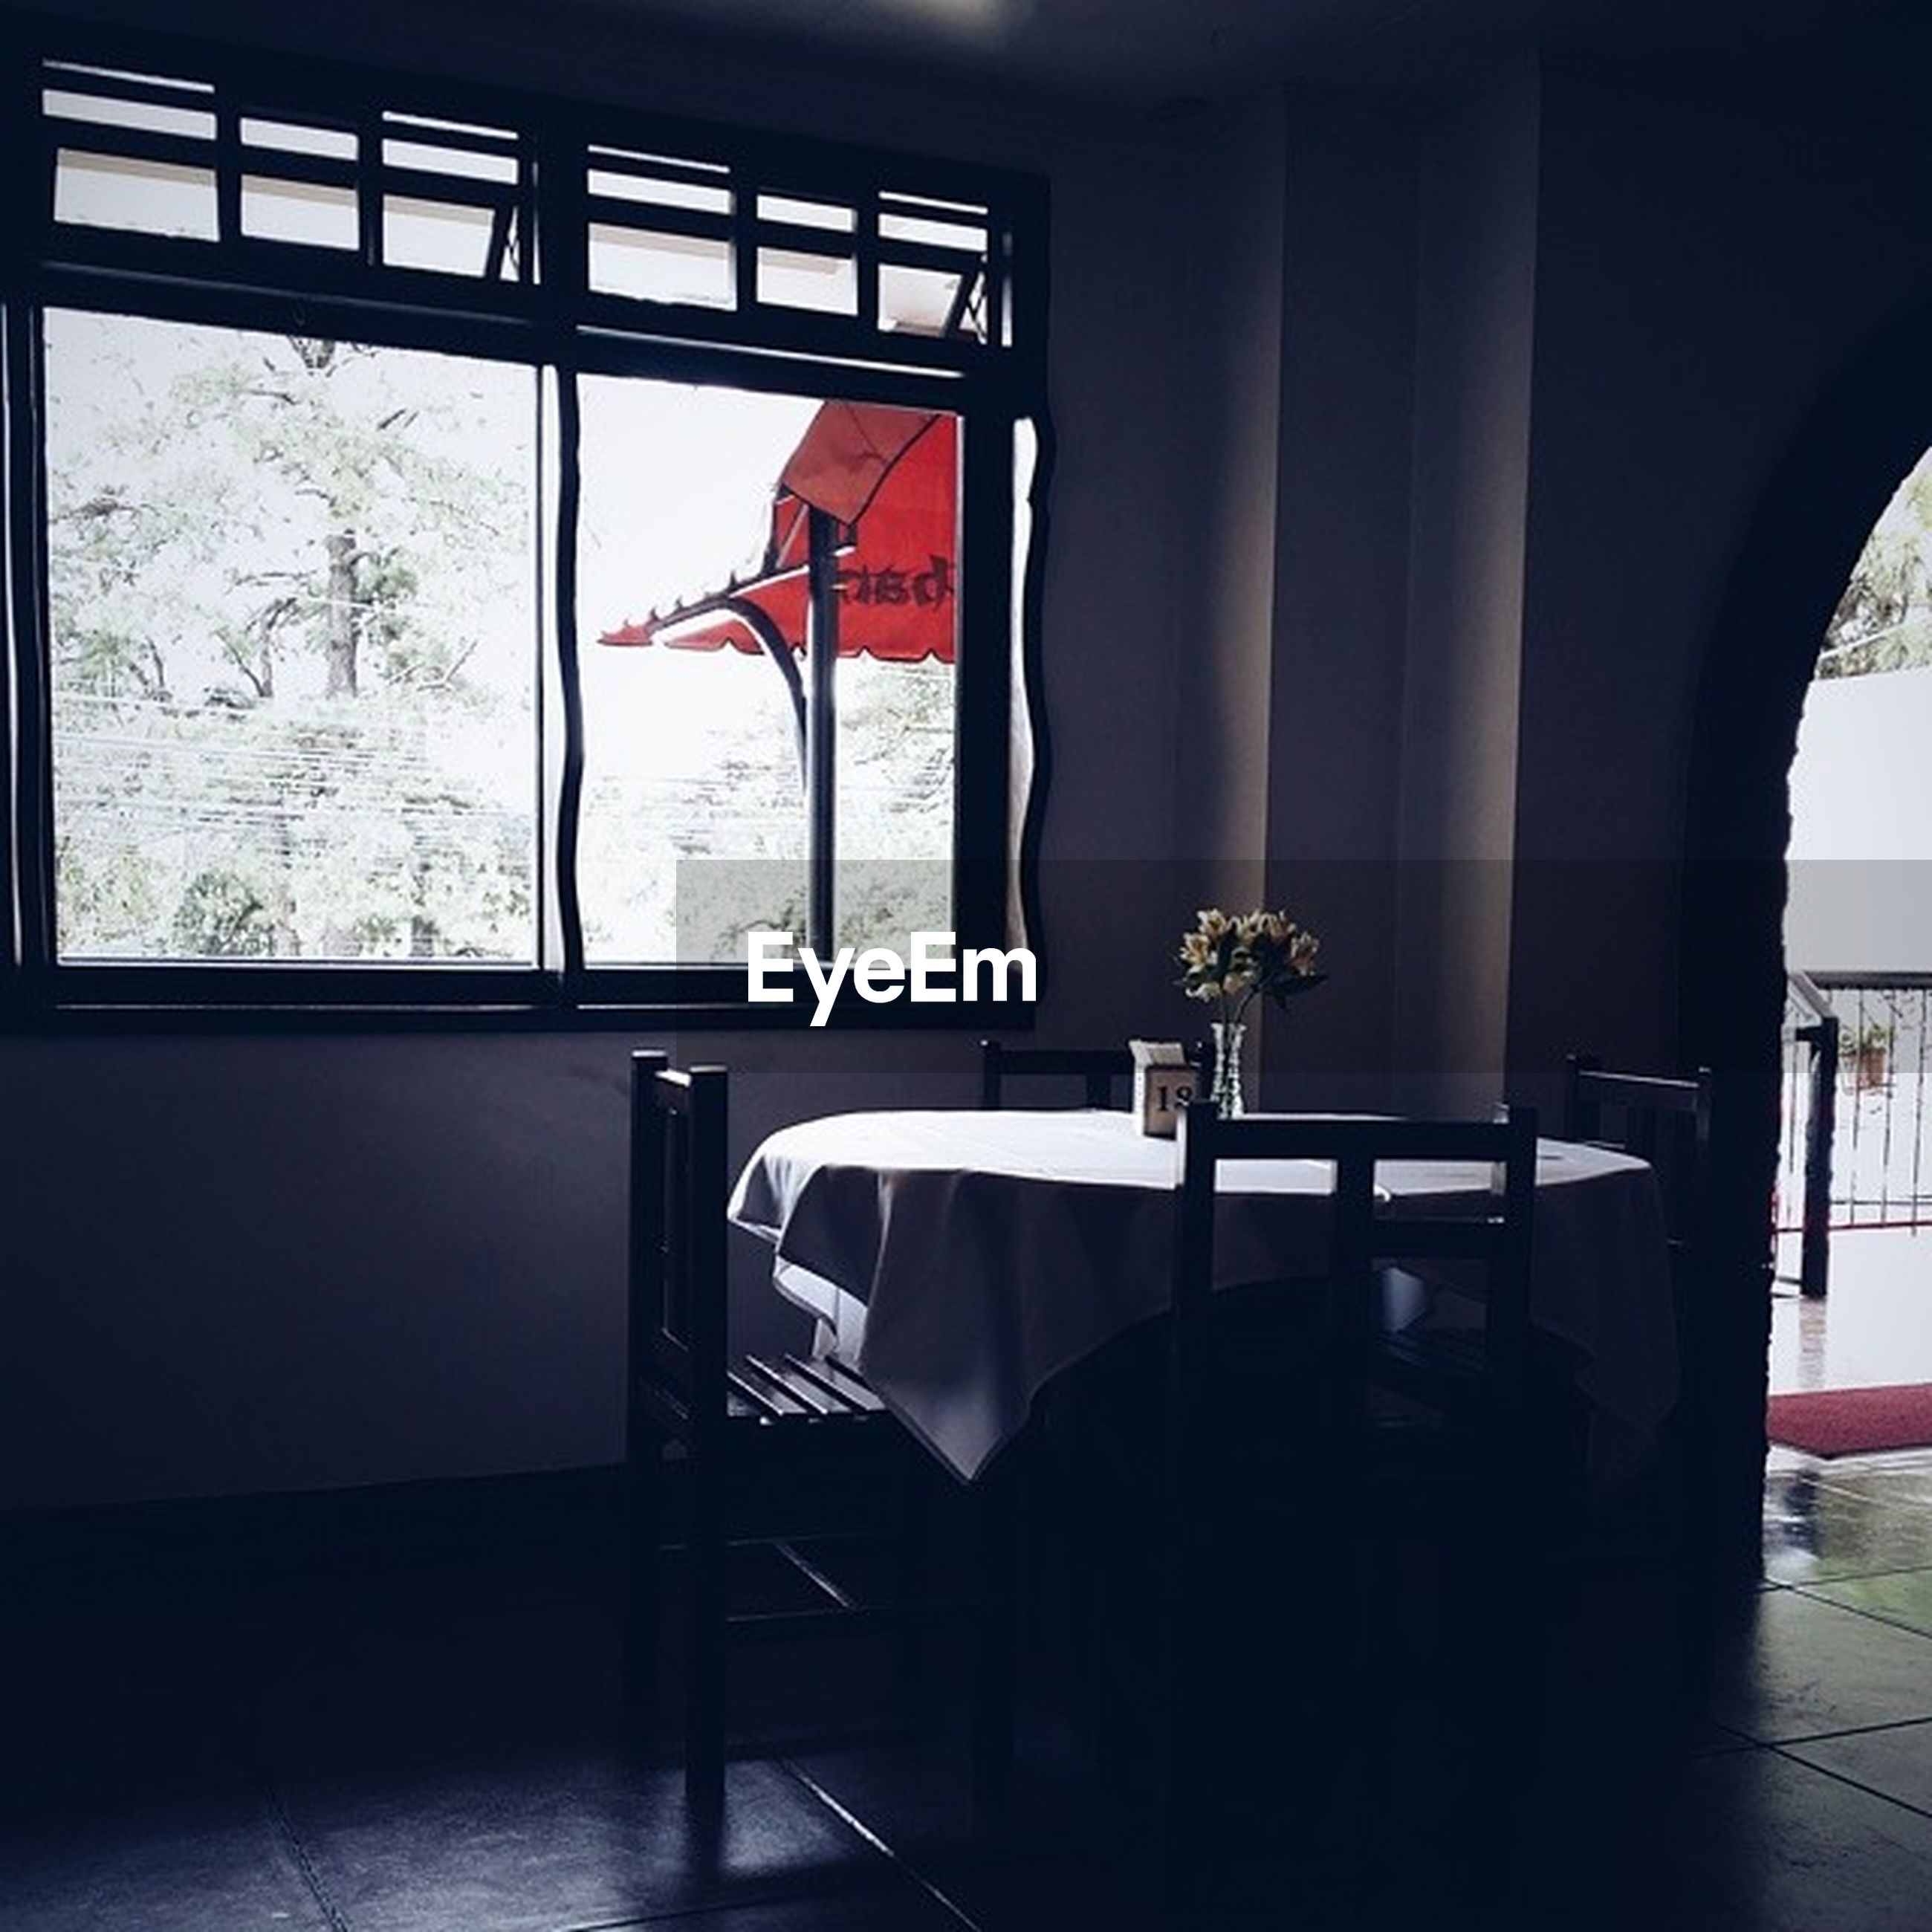 indoors, window, built structure, chair, architecture, glass - material, home interior, table, absence, day, hanging, curtain, transparent, red, sunlight, door, empty, sitting, house, restaurant